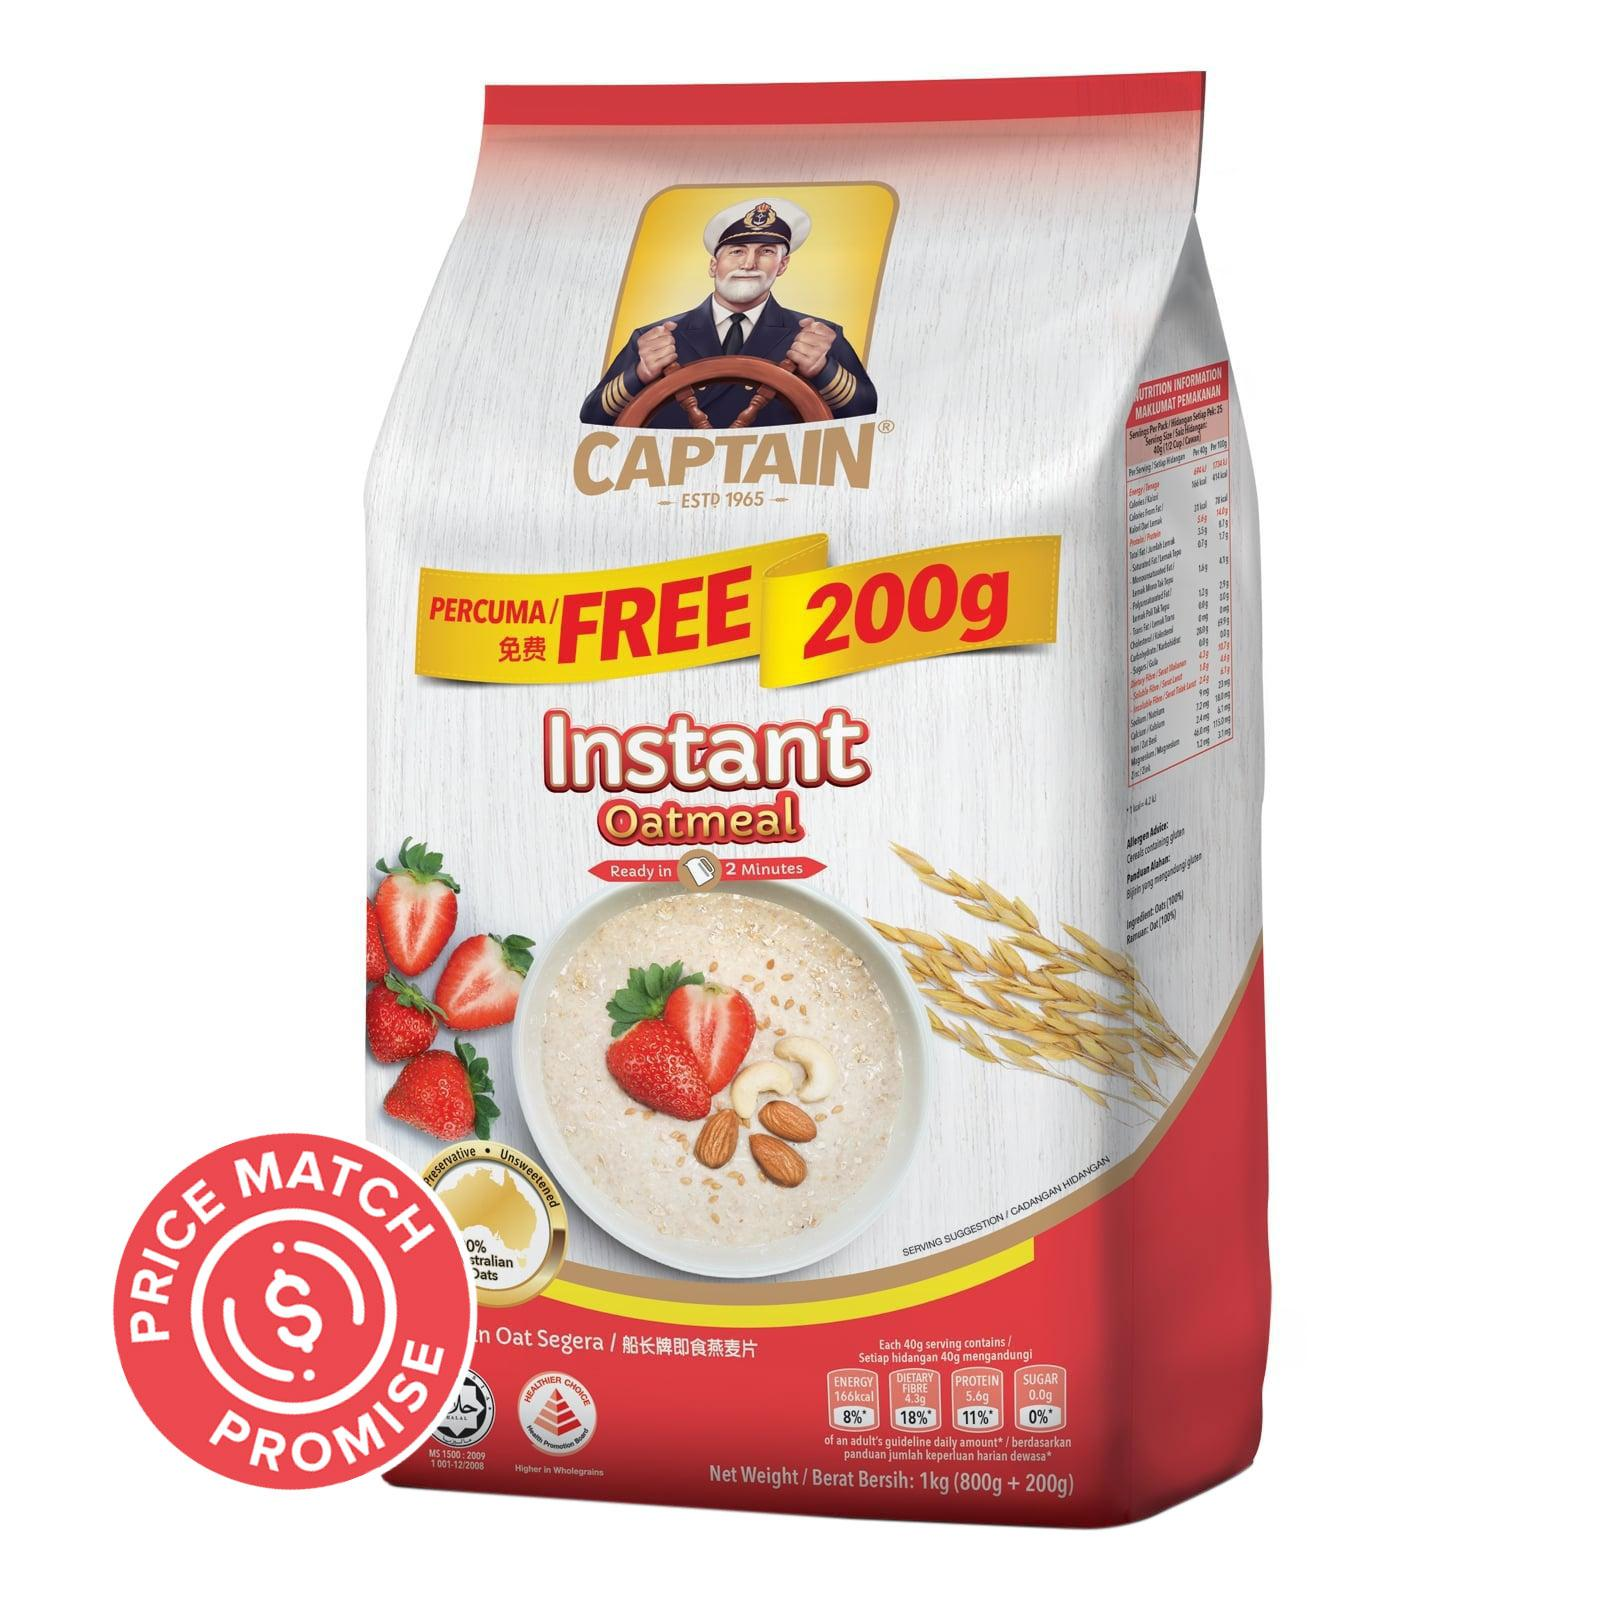 Captain Oats Instant Oatmeal Refill Pack